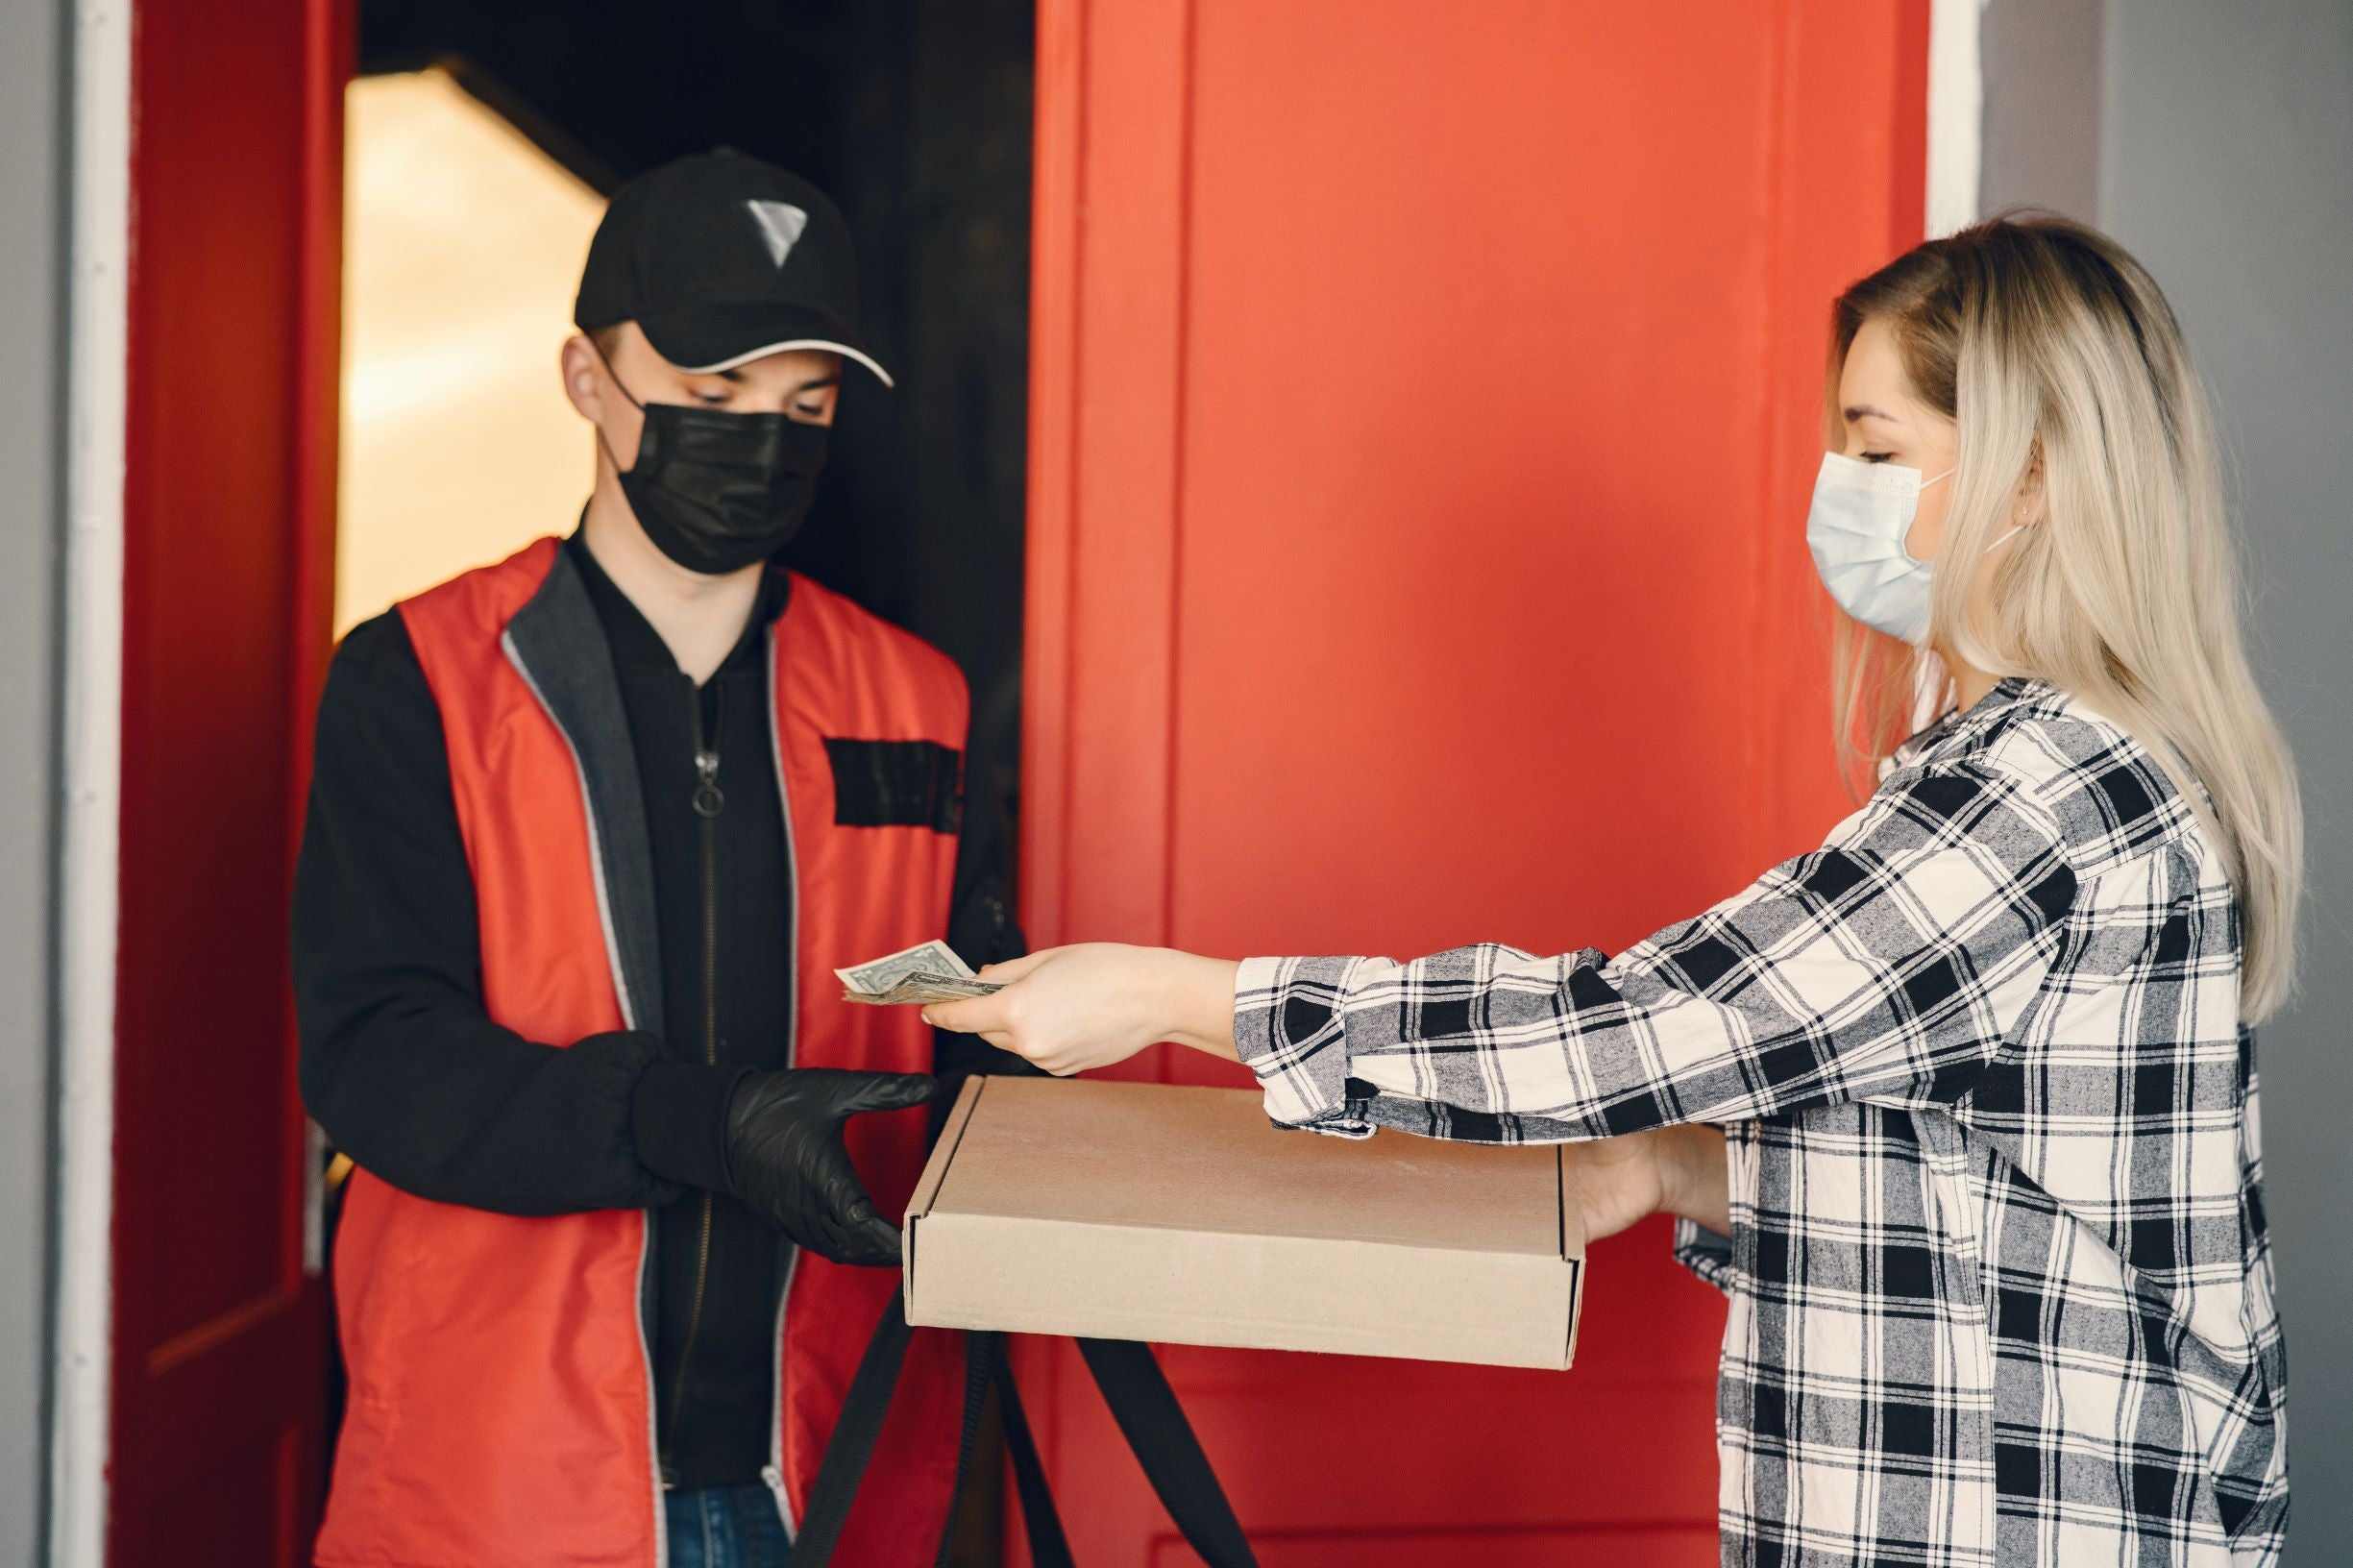 woman handing money over to a man for pizza and both are wearing face masks